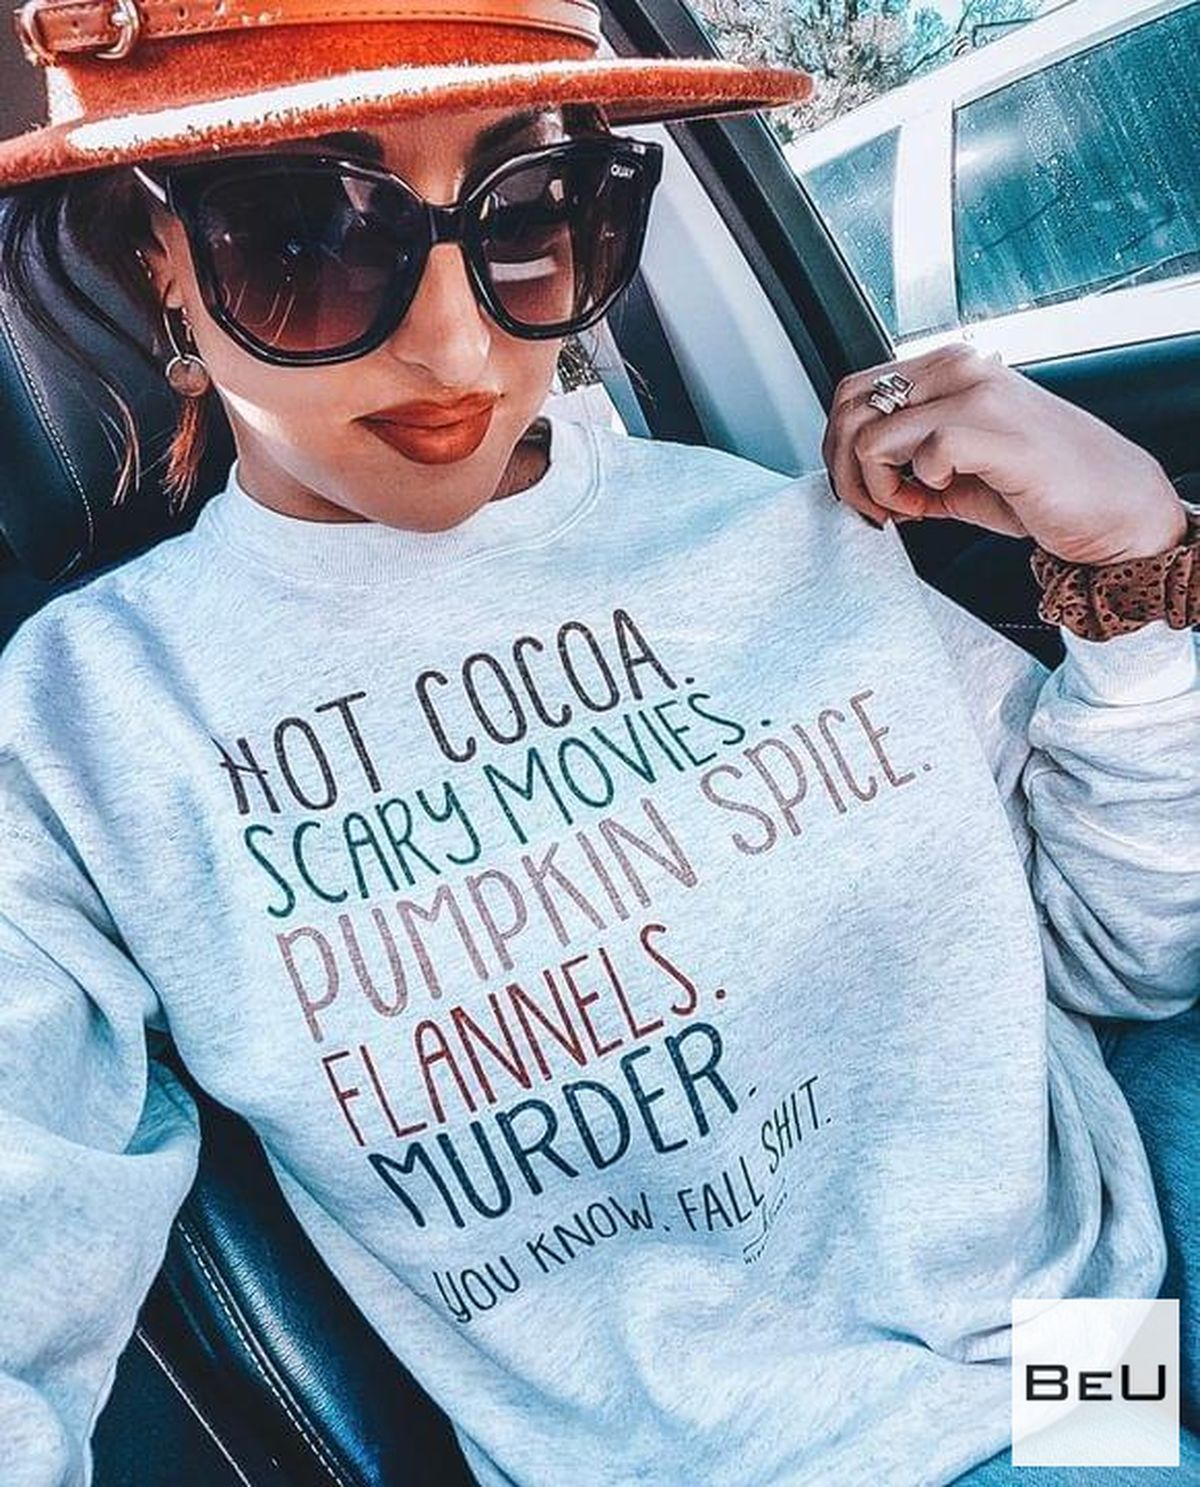 Hot Cocoa Scary Movies Pumpkin Spice Flannels Murder Shirt